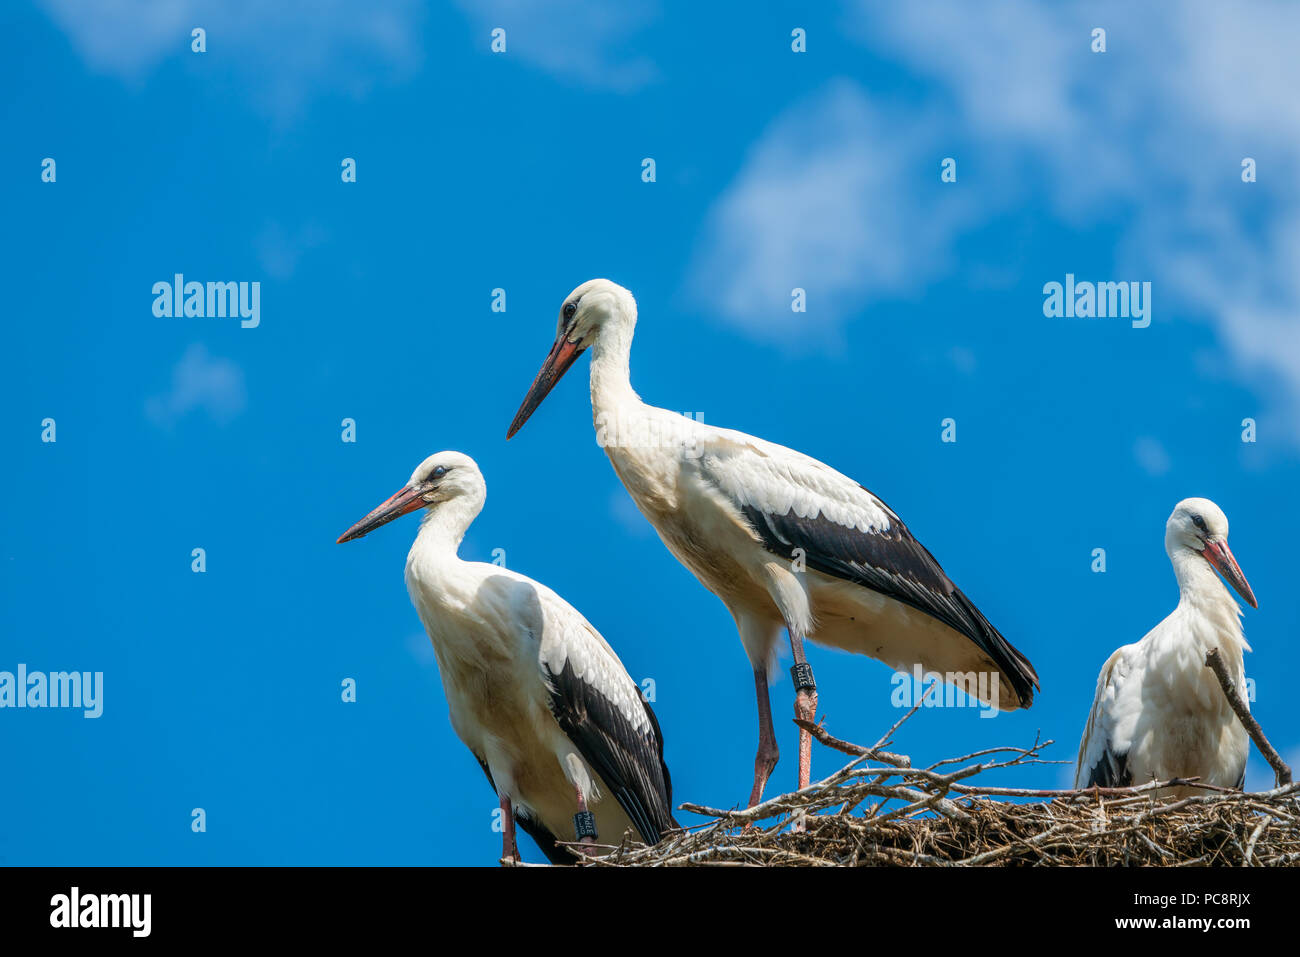 A white stork family (Ciconia ciconia) - three storks standing in a nest in Polish countryside - Stock Image